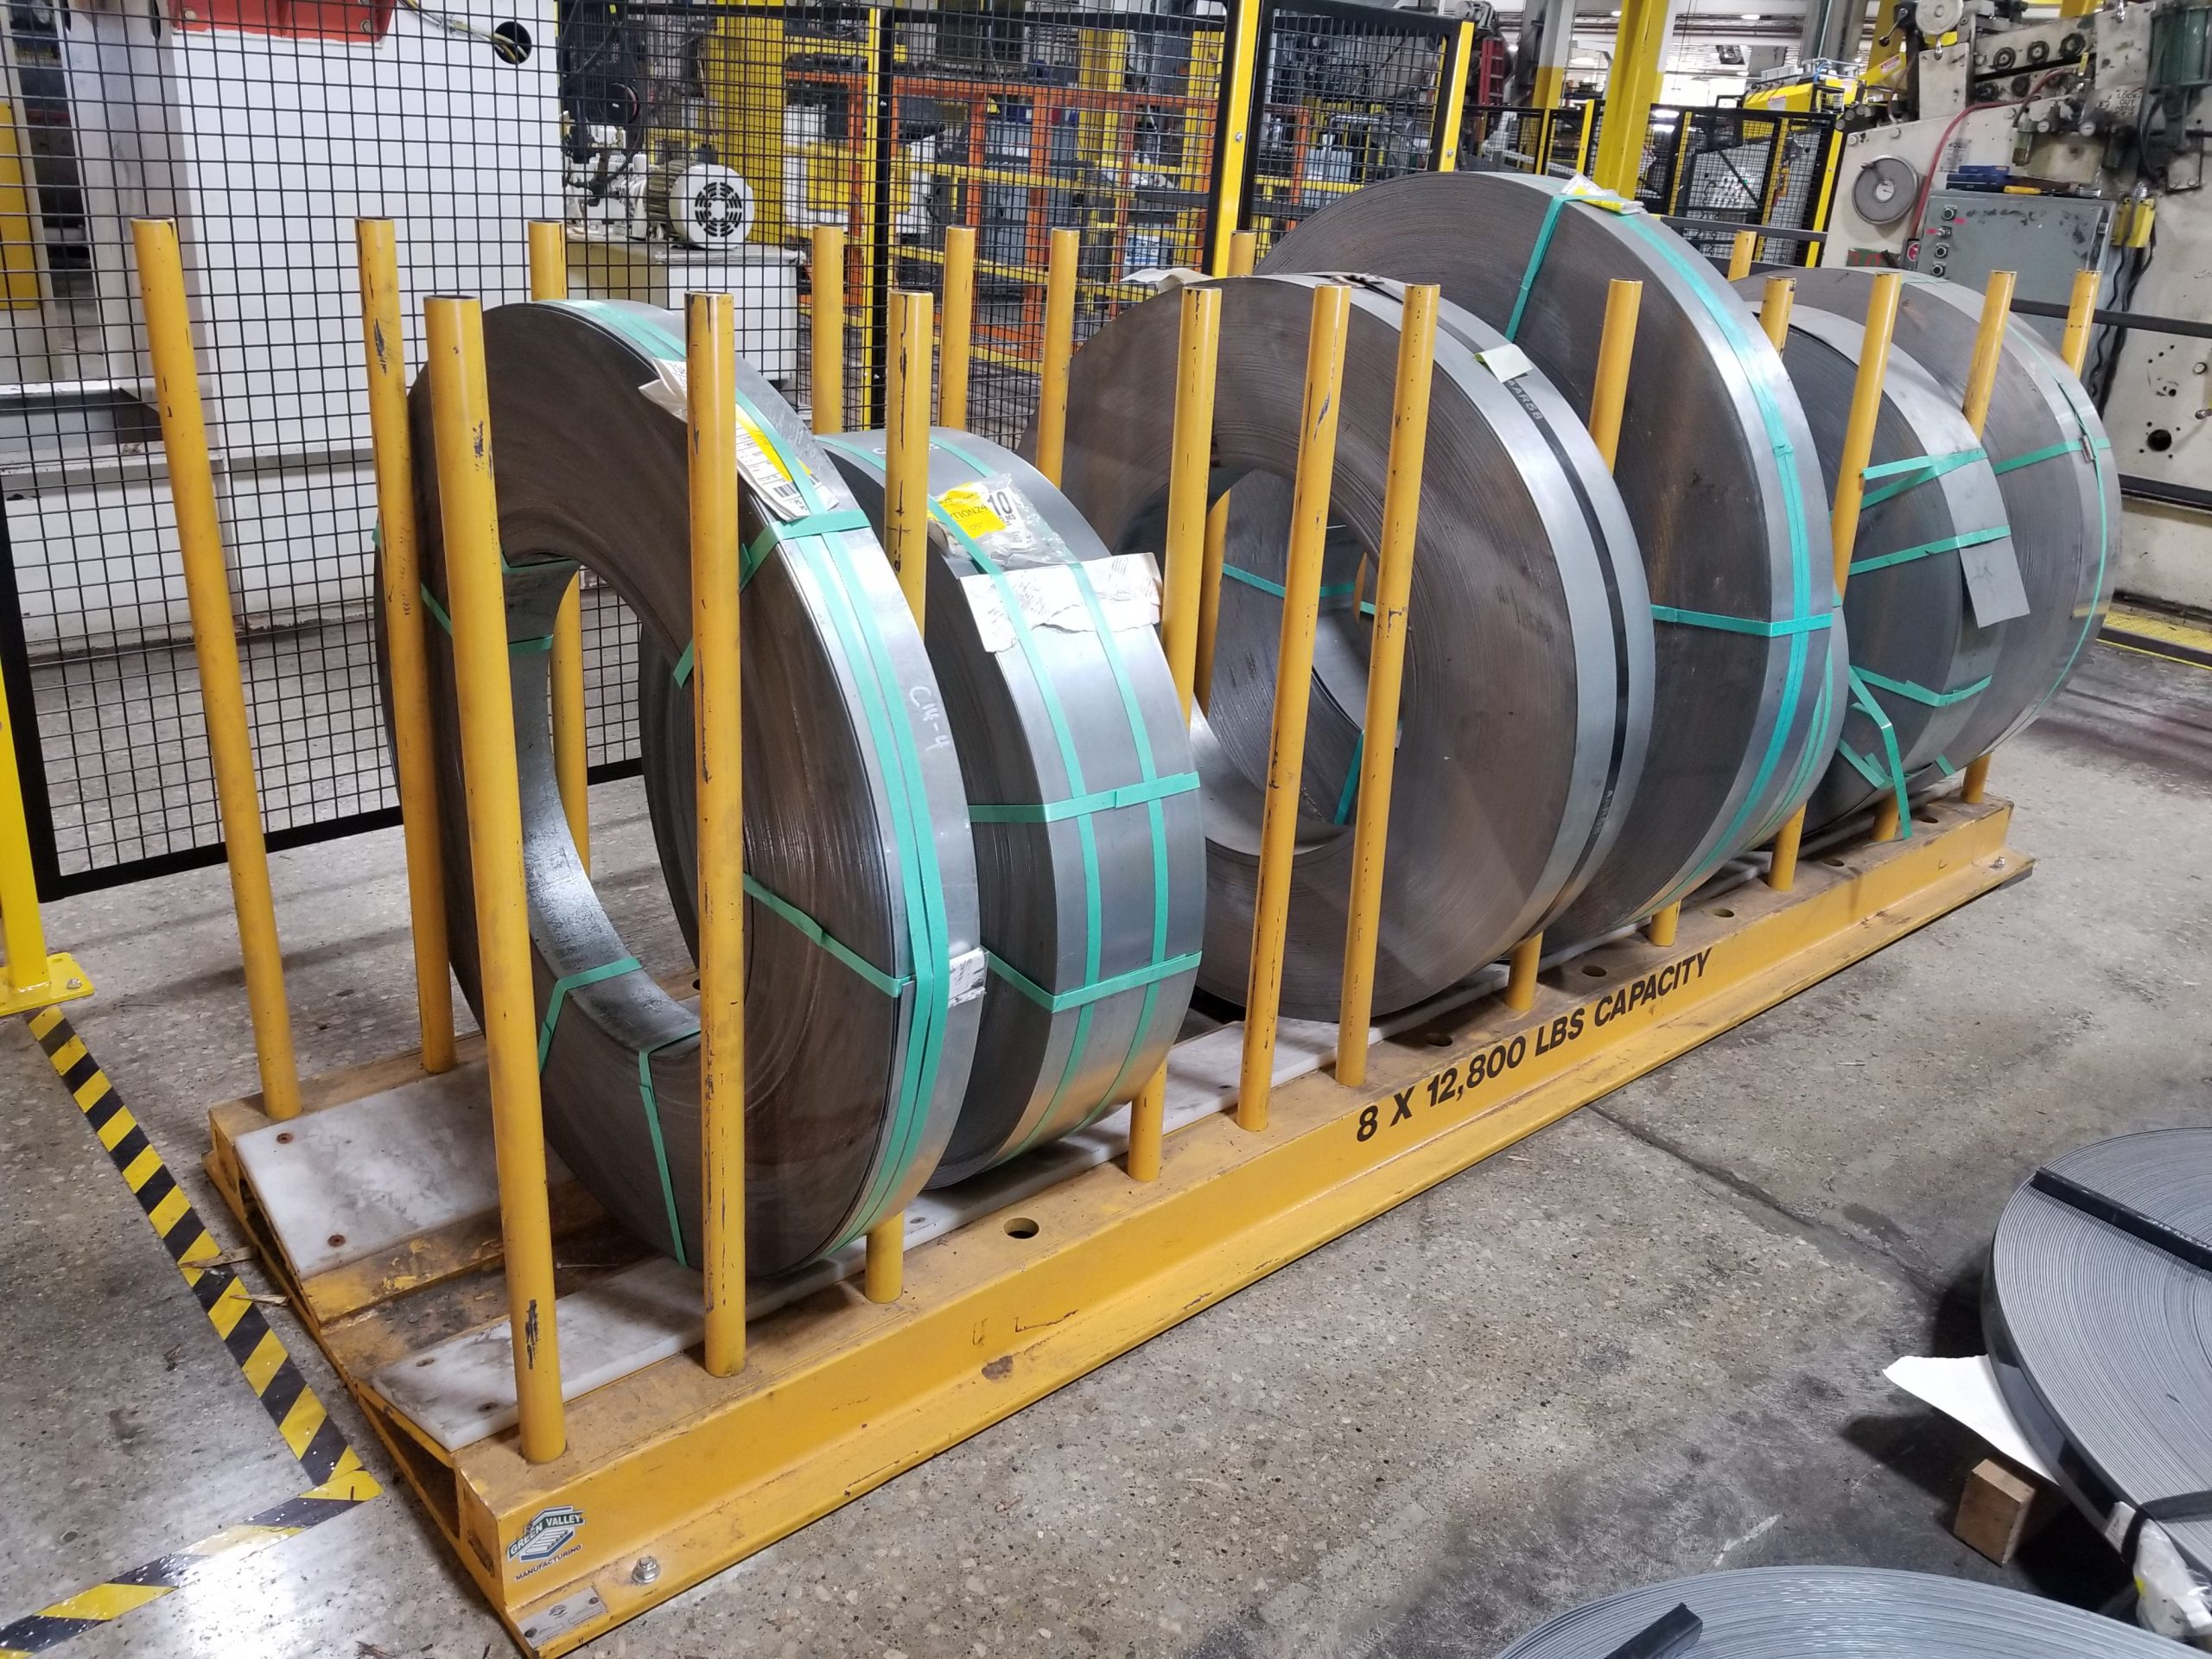 12,000 lb Capacity Coil Rack with Adjustable Posts